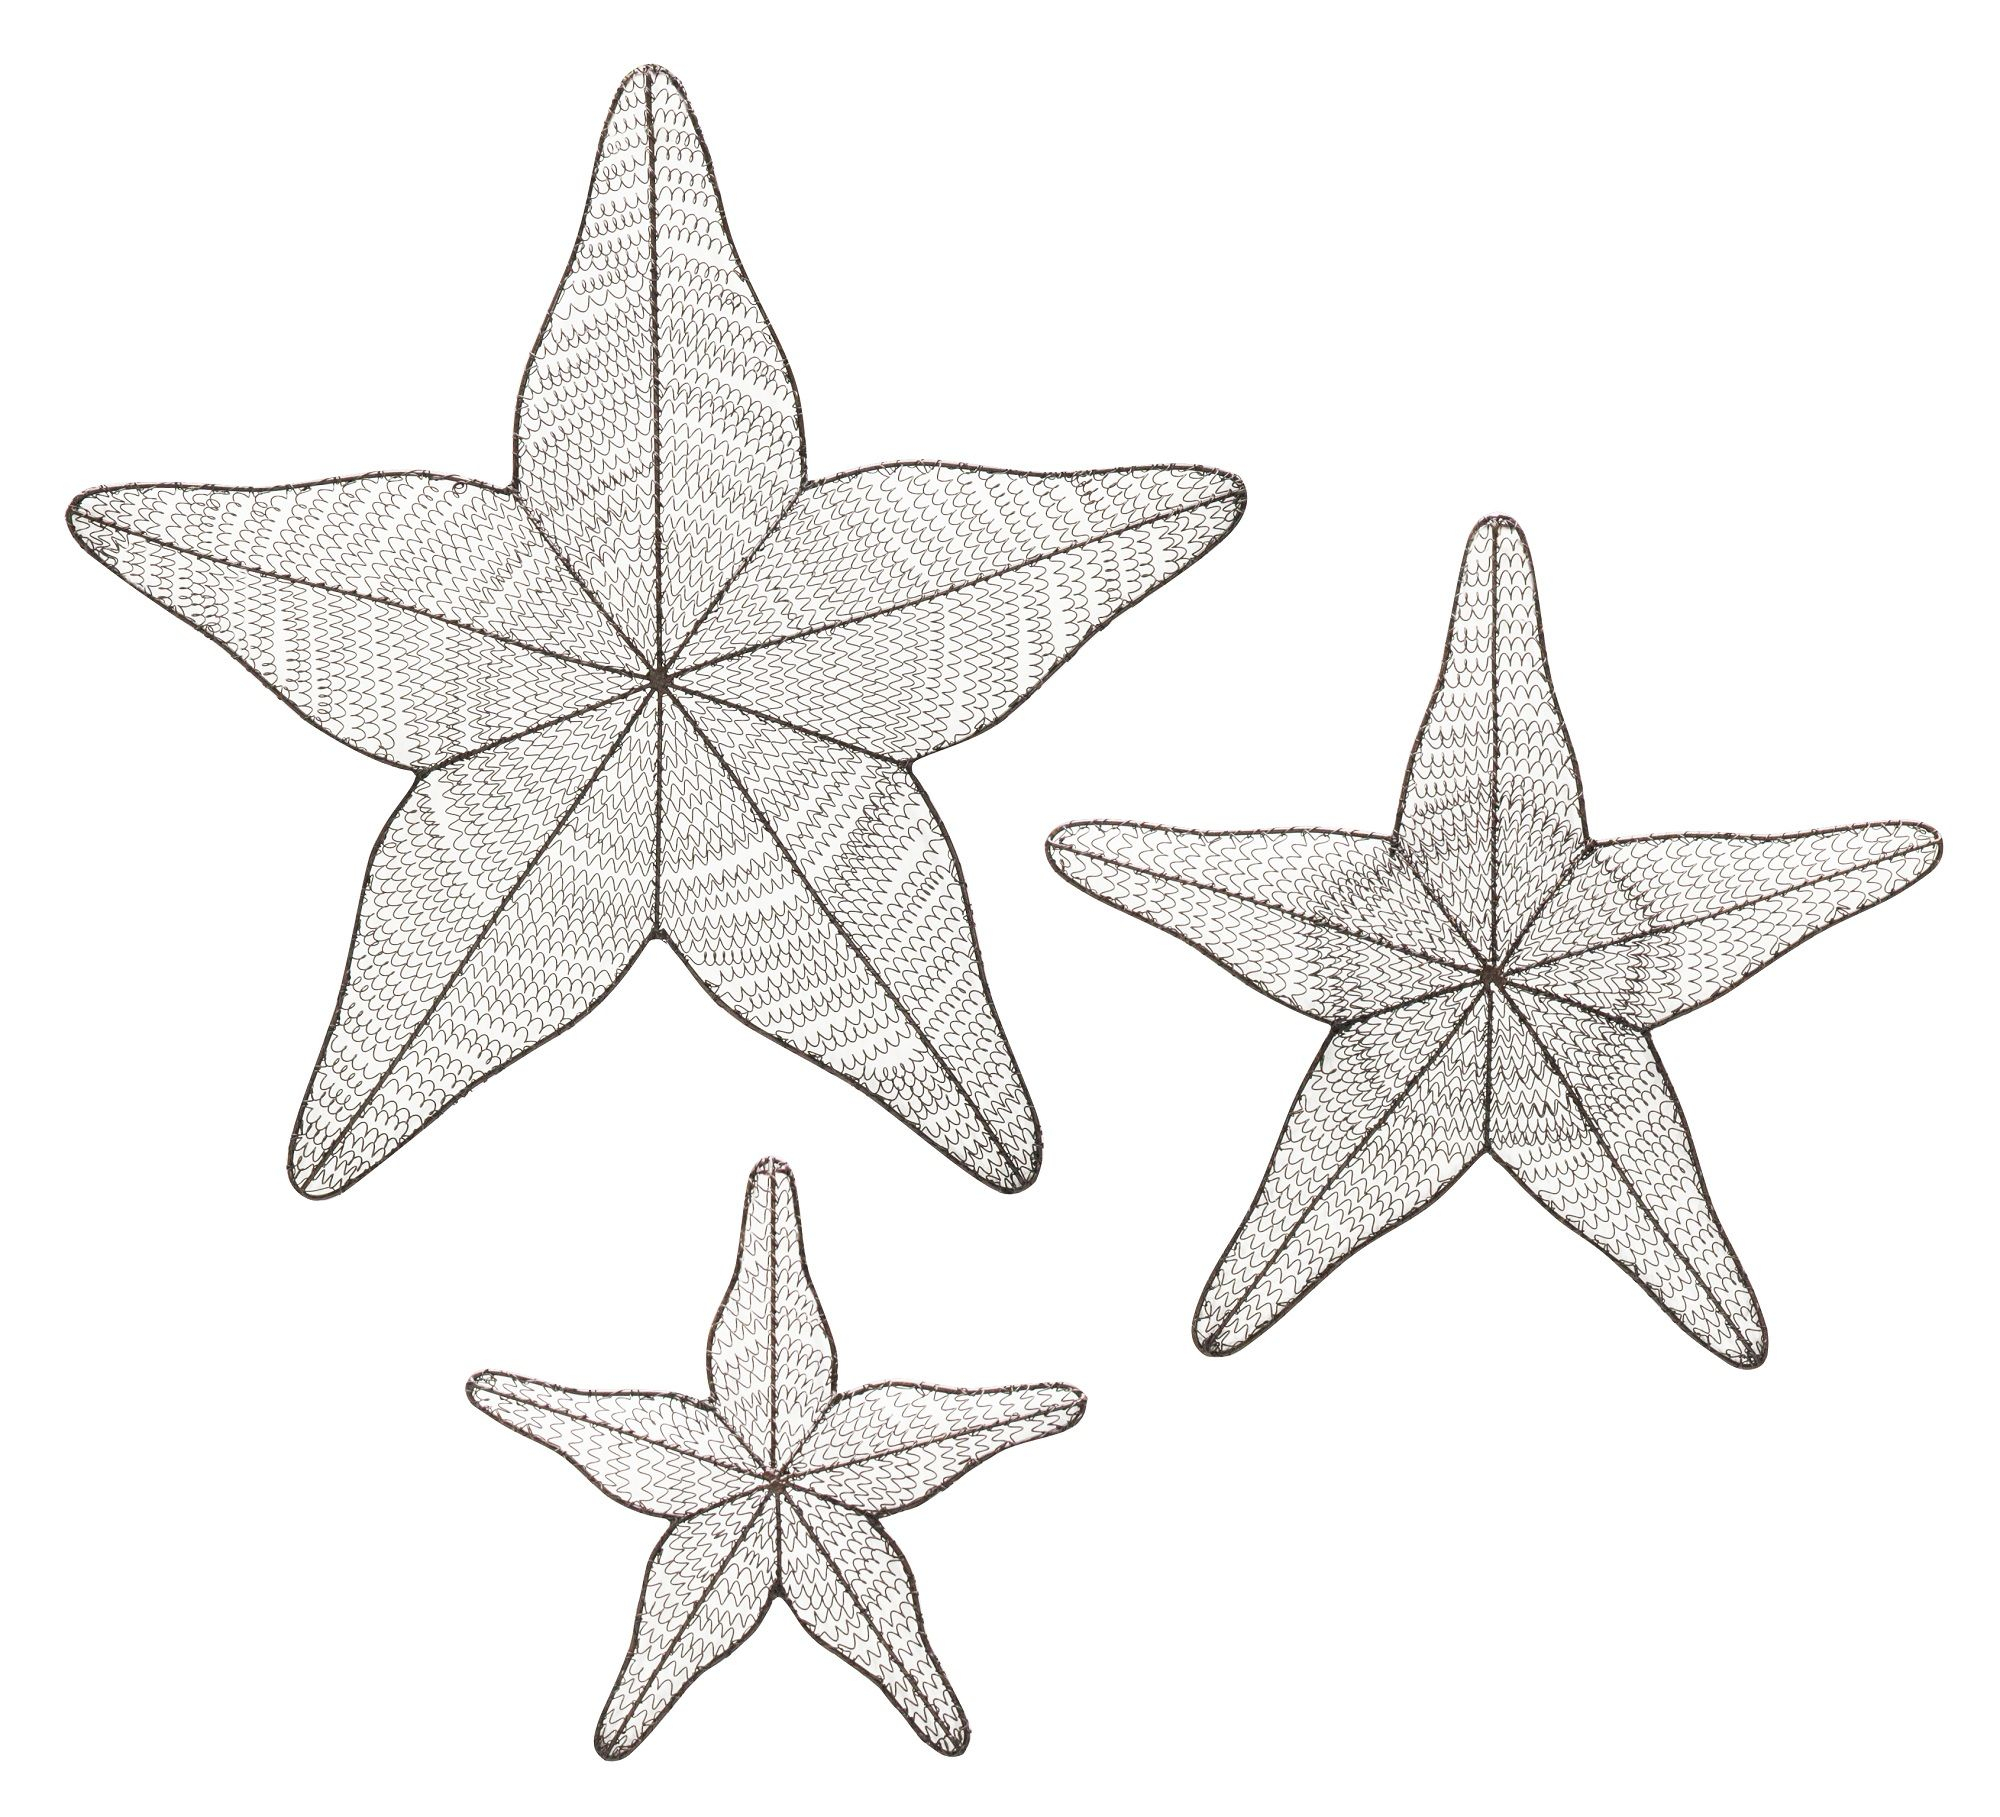 Most Recent Pinterest Regarding Yelton 3 Piece Starfish Wall Decor Sets (View 16 of 20)